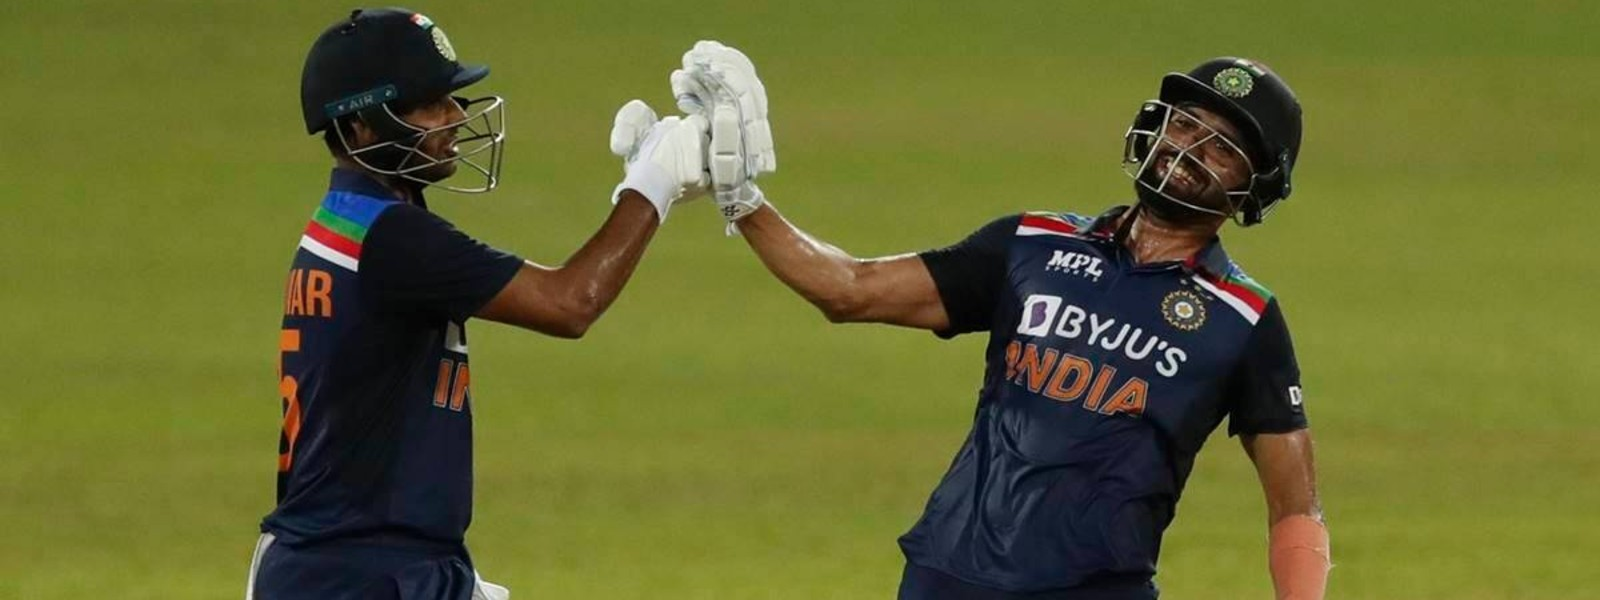 India beat Sri Lanka by 3 wickets in 2nd ODI to clinch series